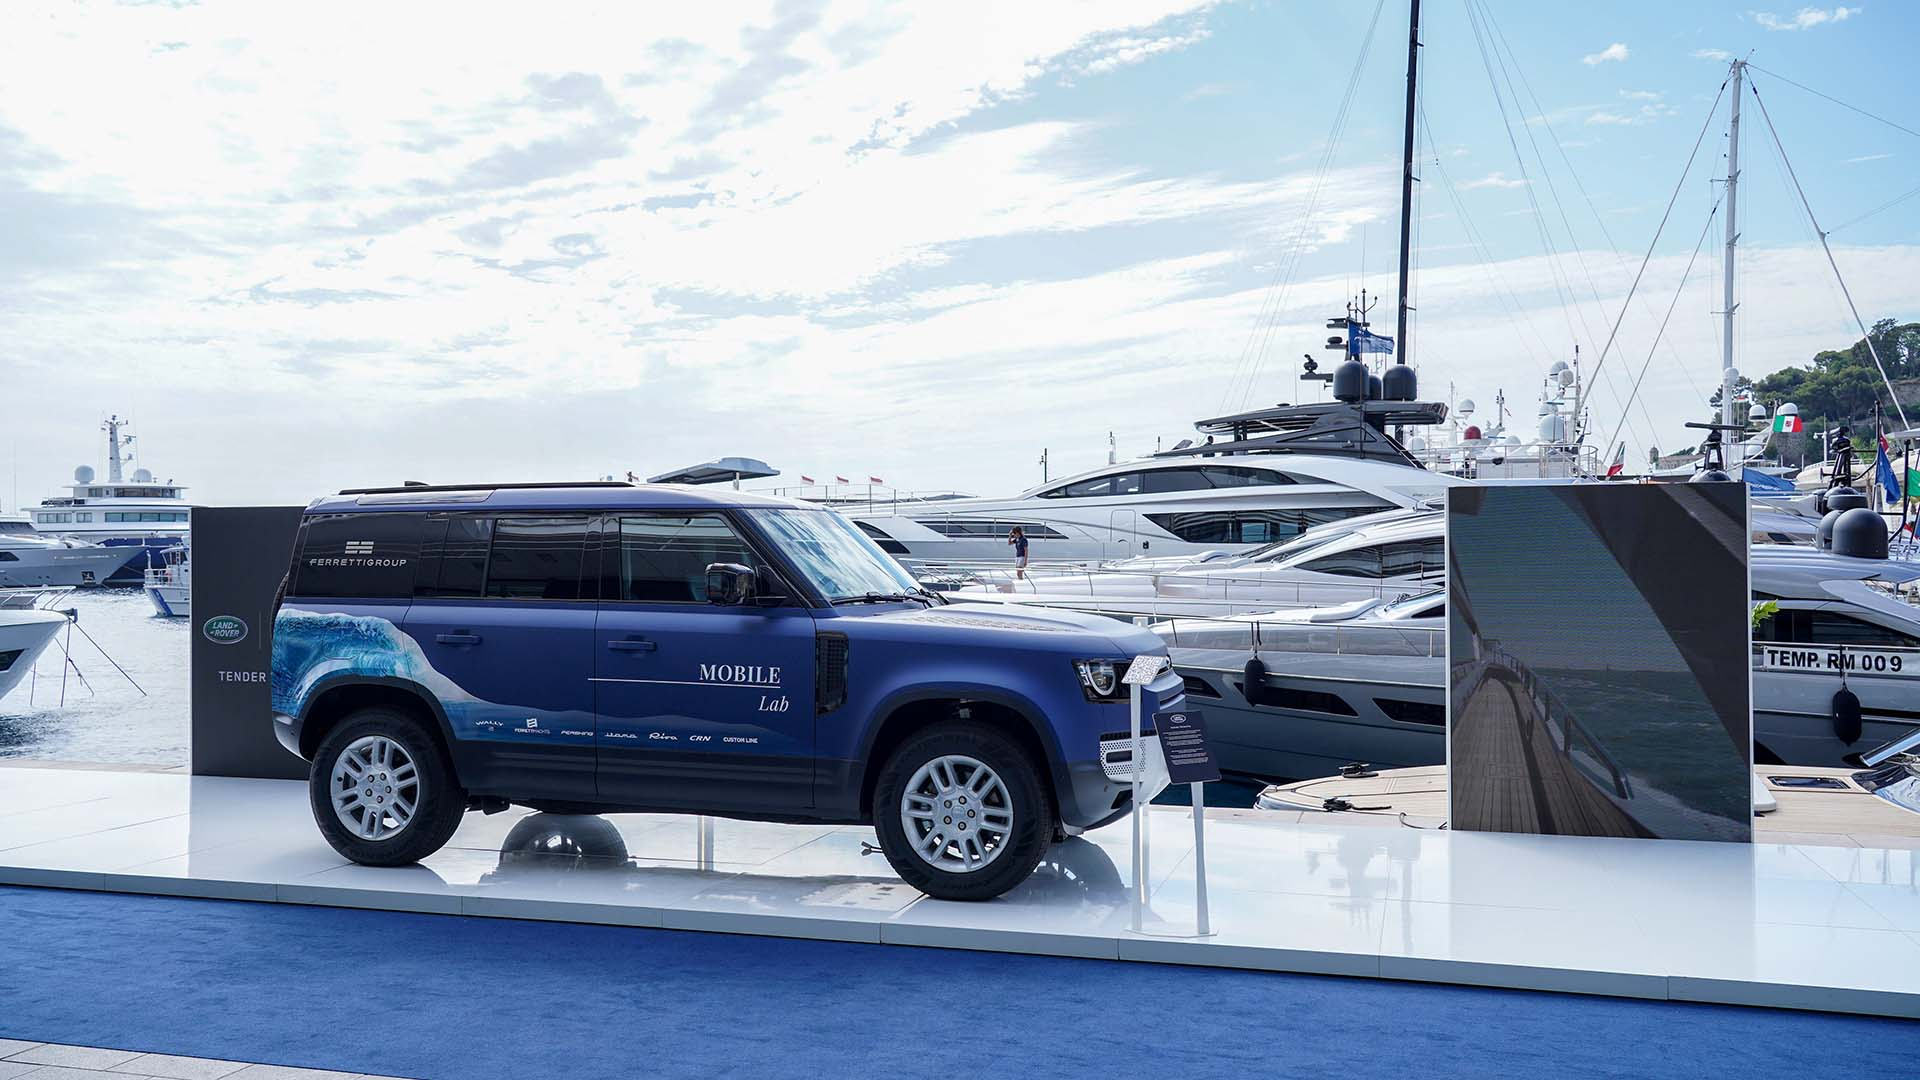 Ferretti Group Mobile Lab - Land Rover Defender forWorks | Land Rover IT